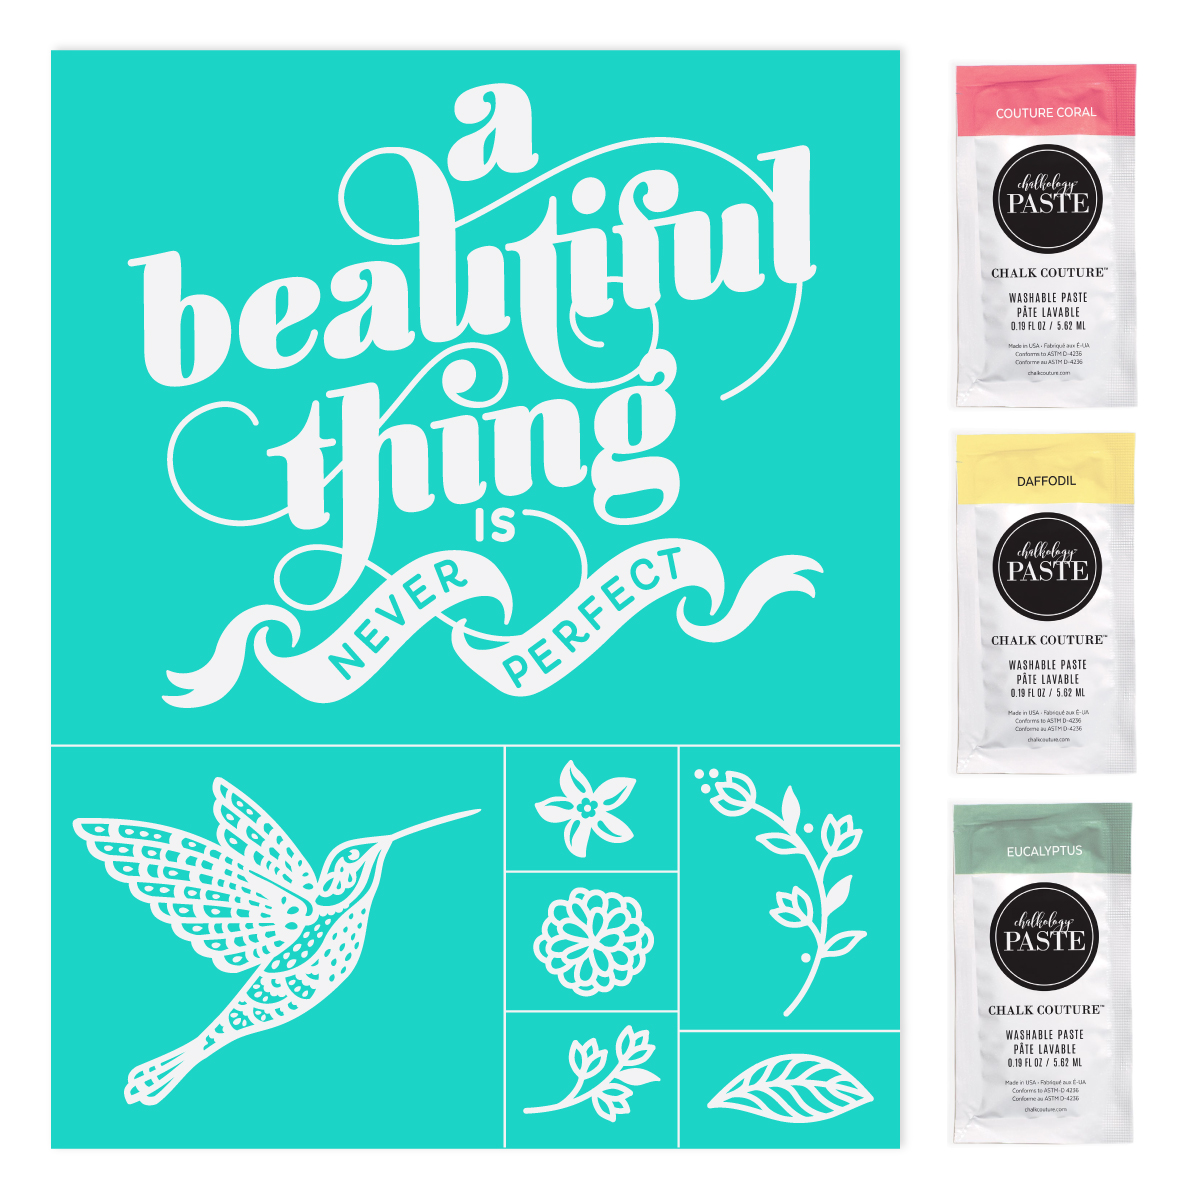 Club Couture June 2021: A Beautiful Thing Transfer shown with the 3 Paste Single packets